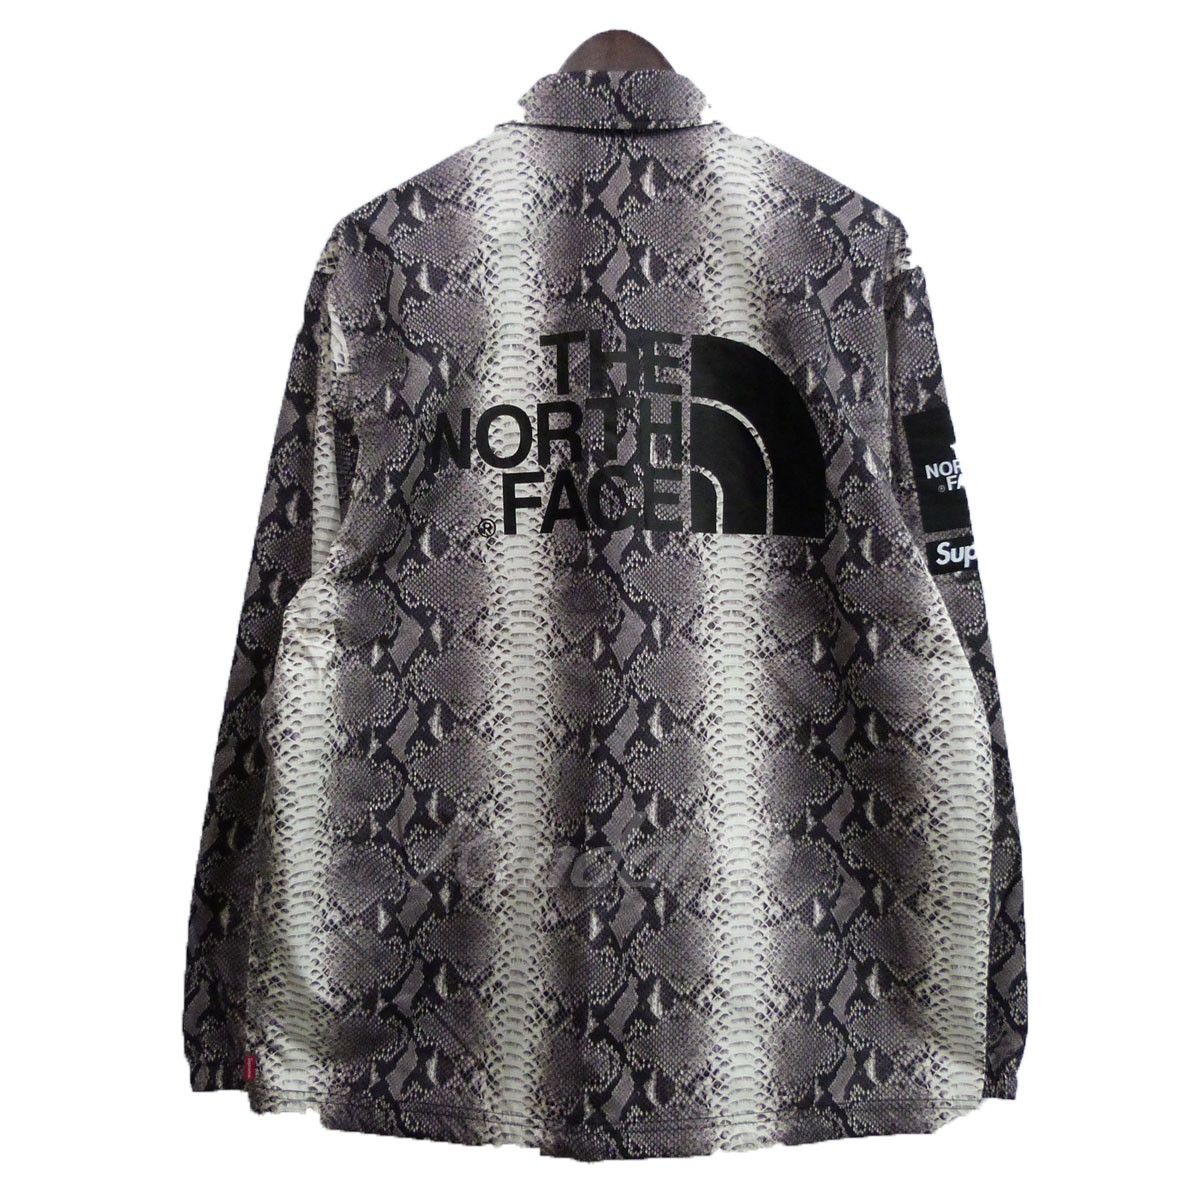 6d27dc91d913c7 Supreme X THE NORTH FACE 18SS